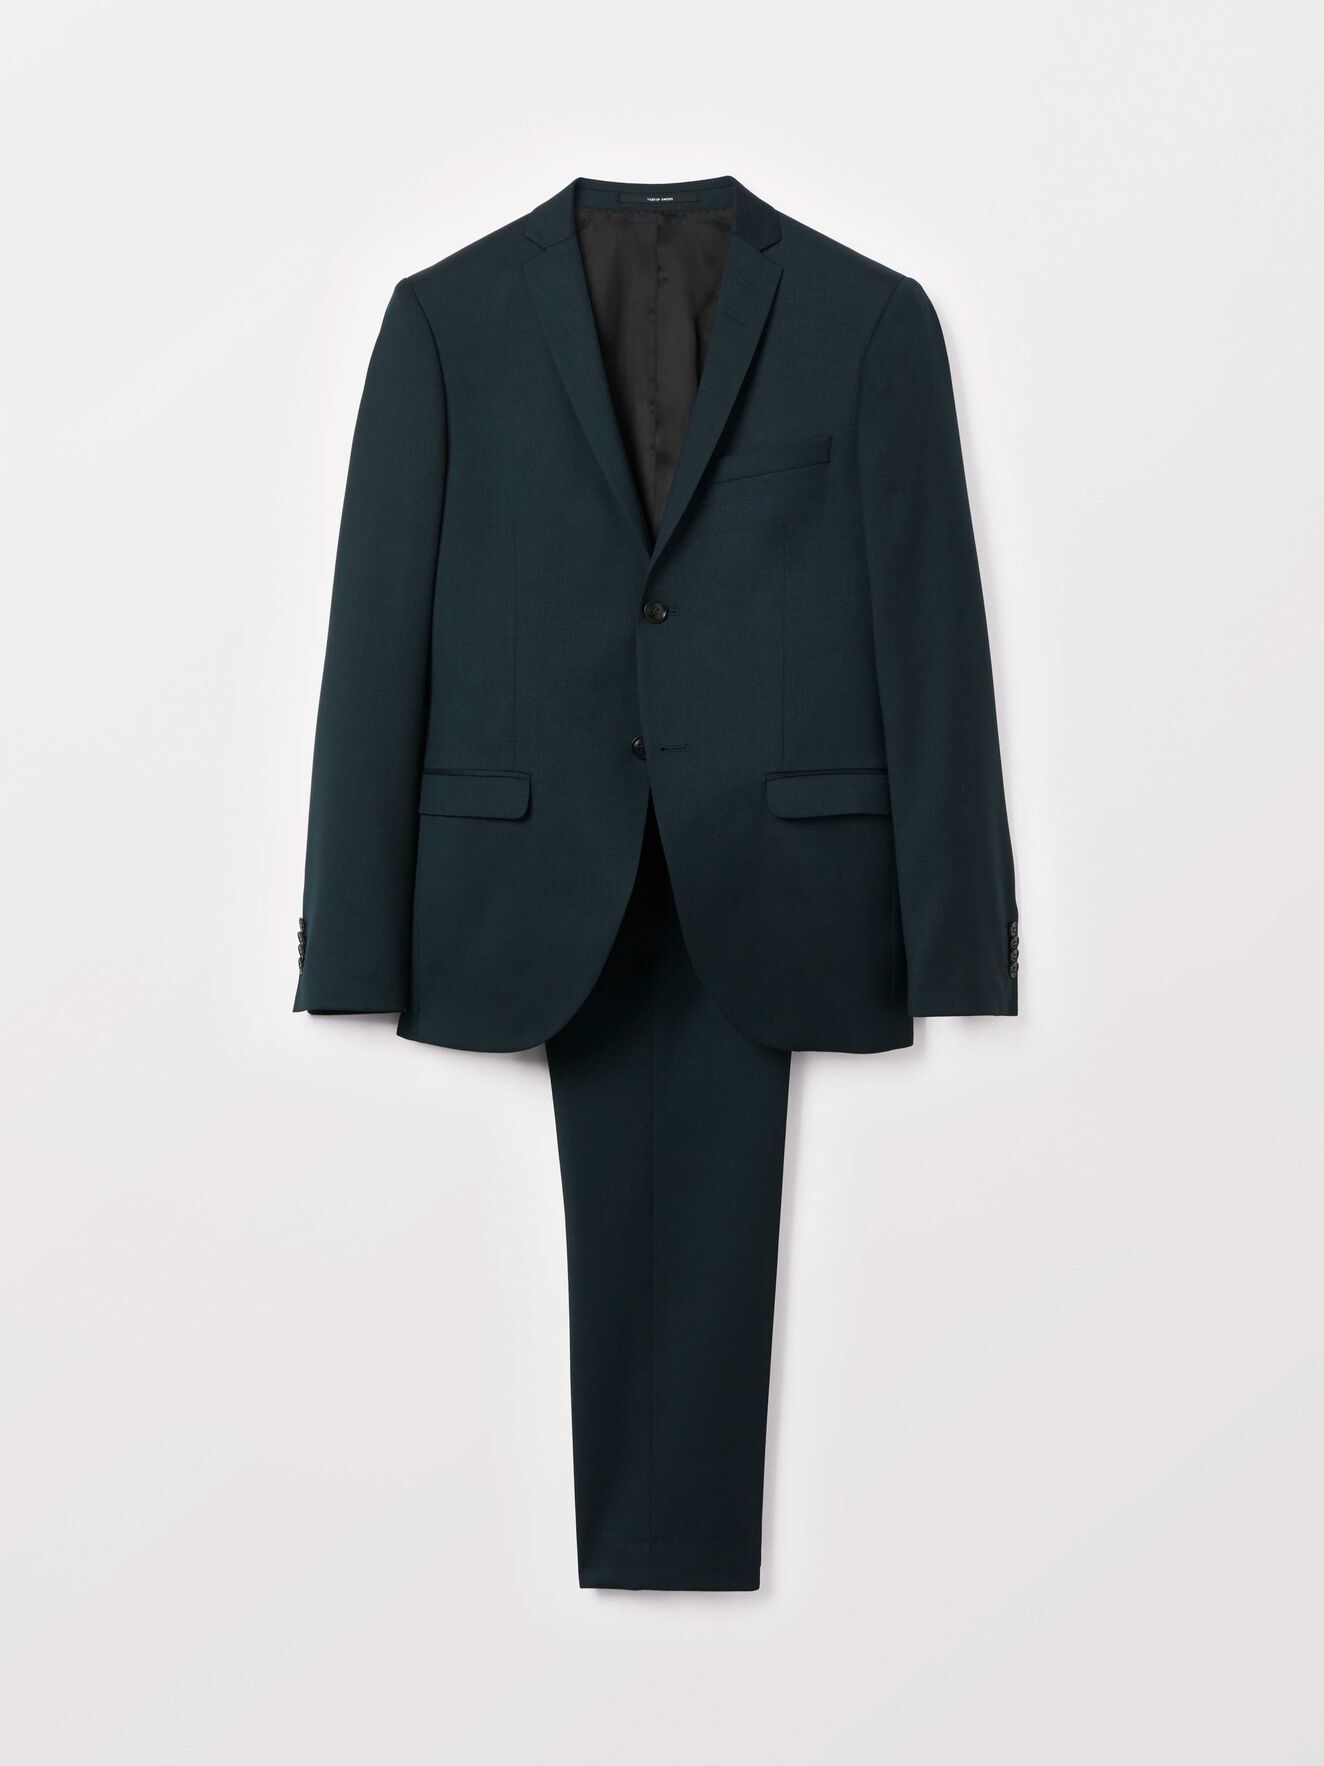 S.Jile Suit in Black Green from Tiger of Sweden